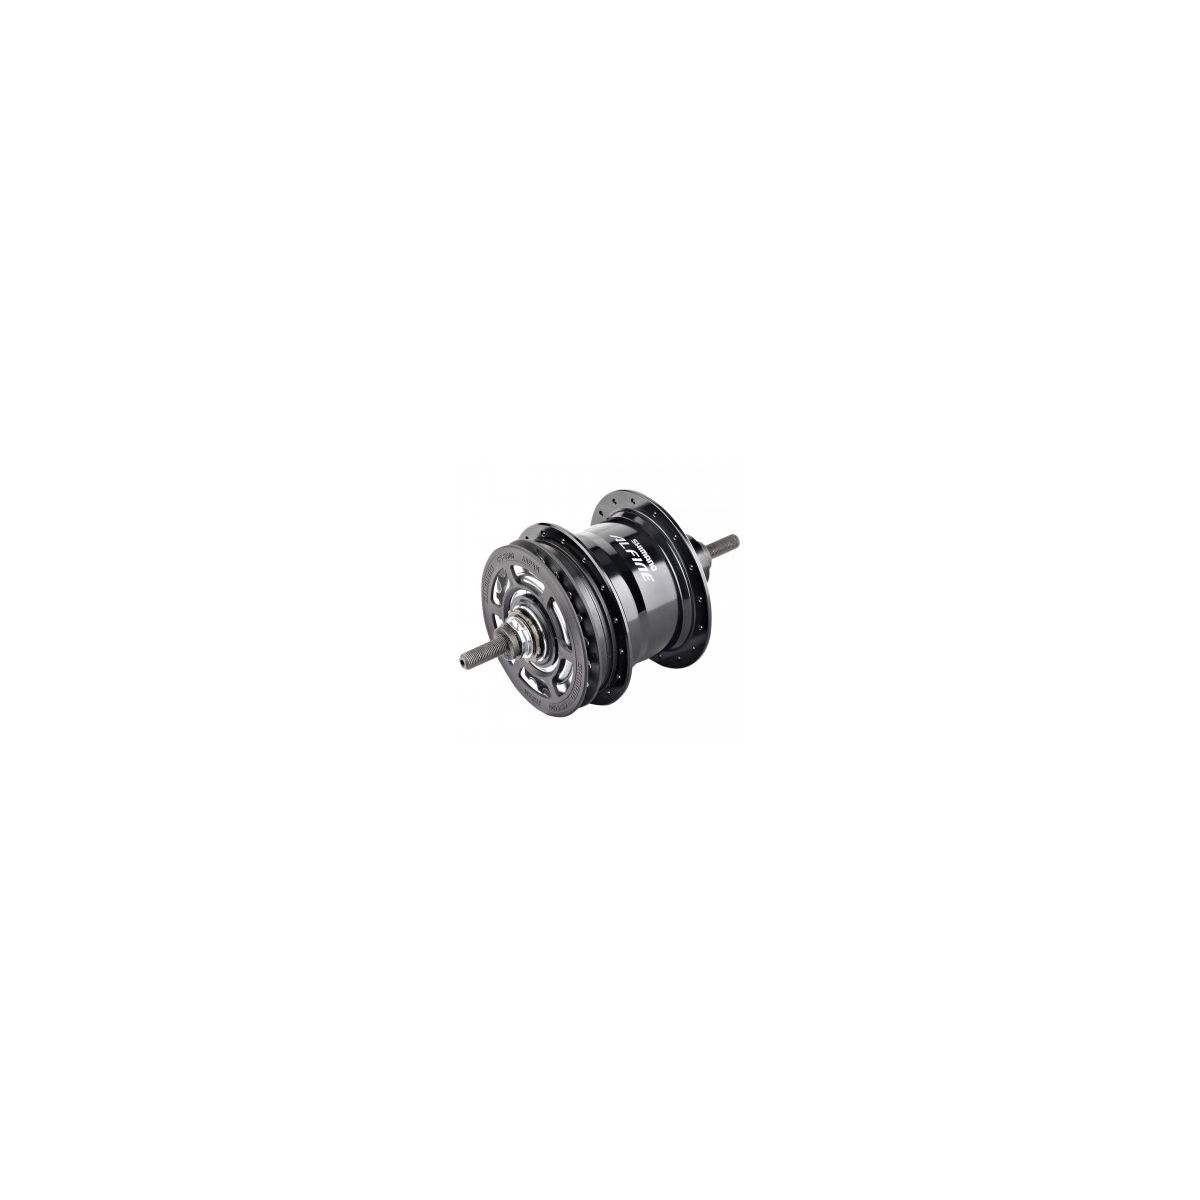 Alfine SGS-700 11-speed gear hub